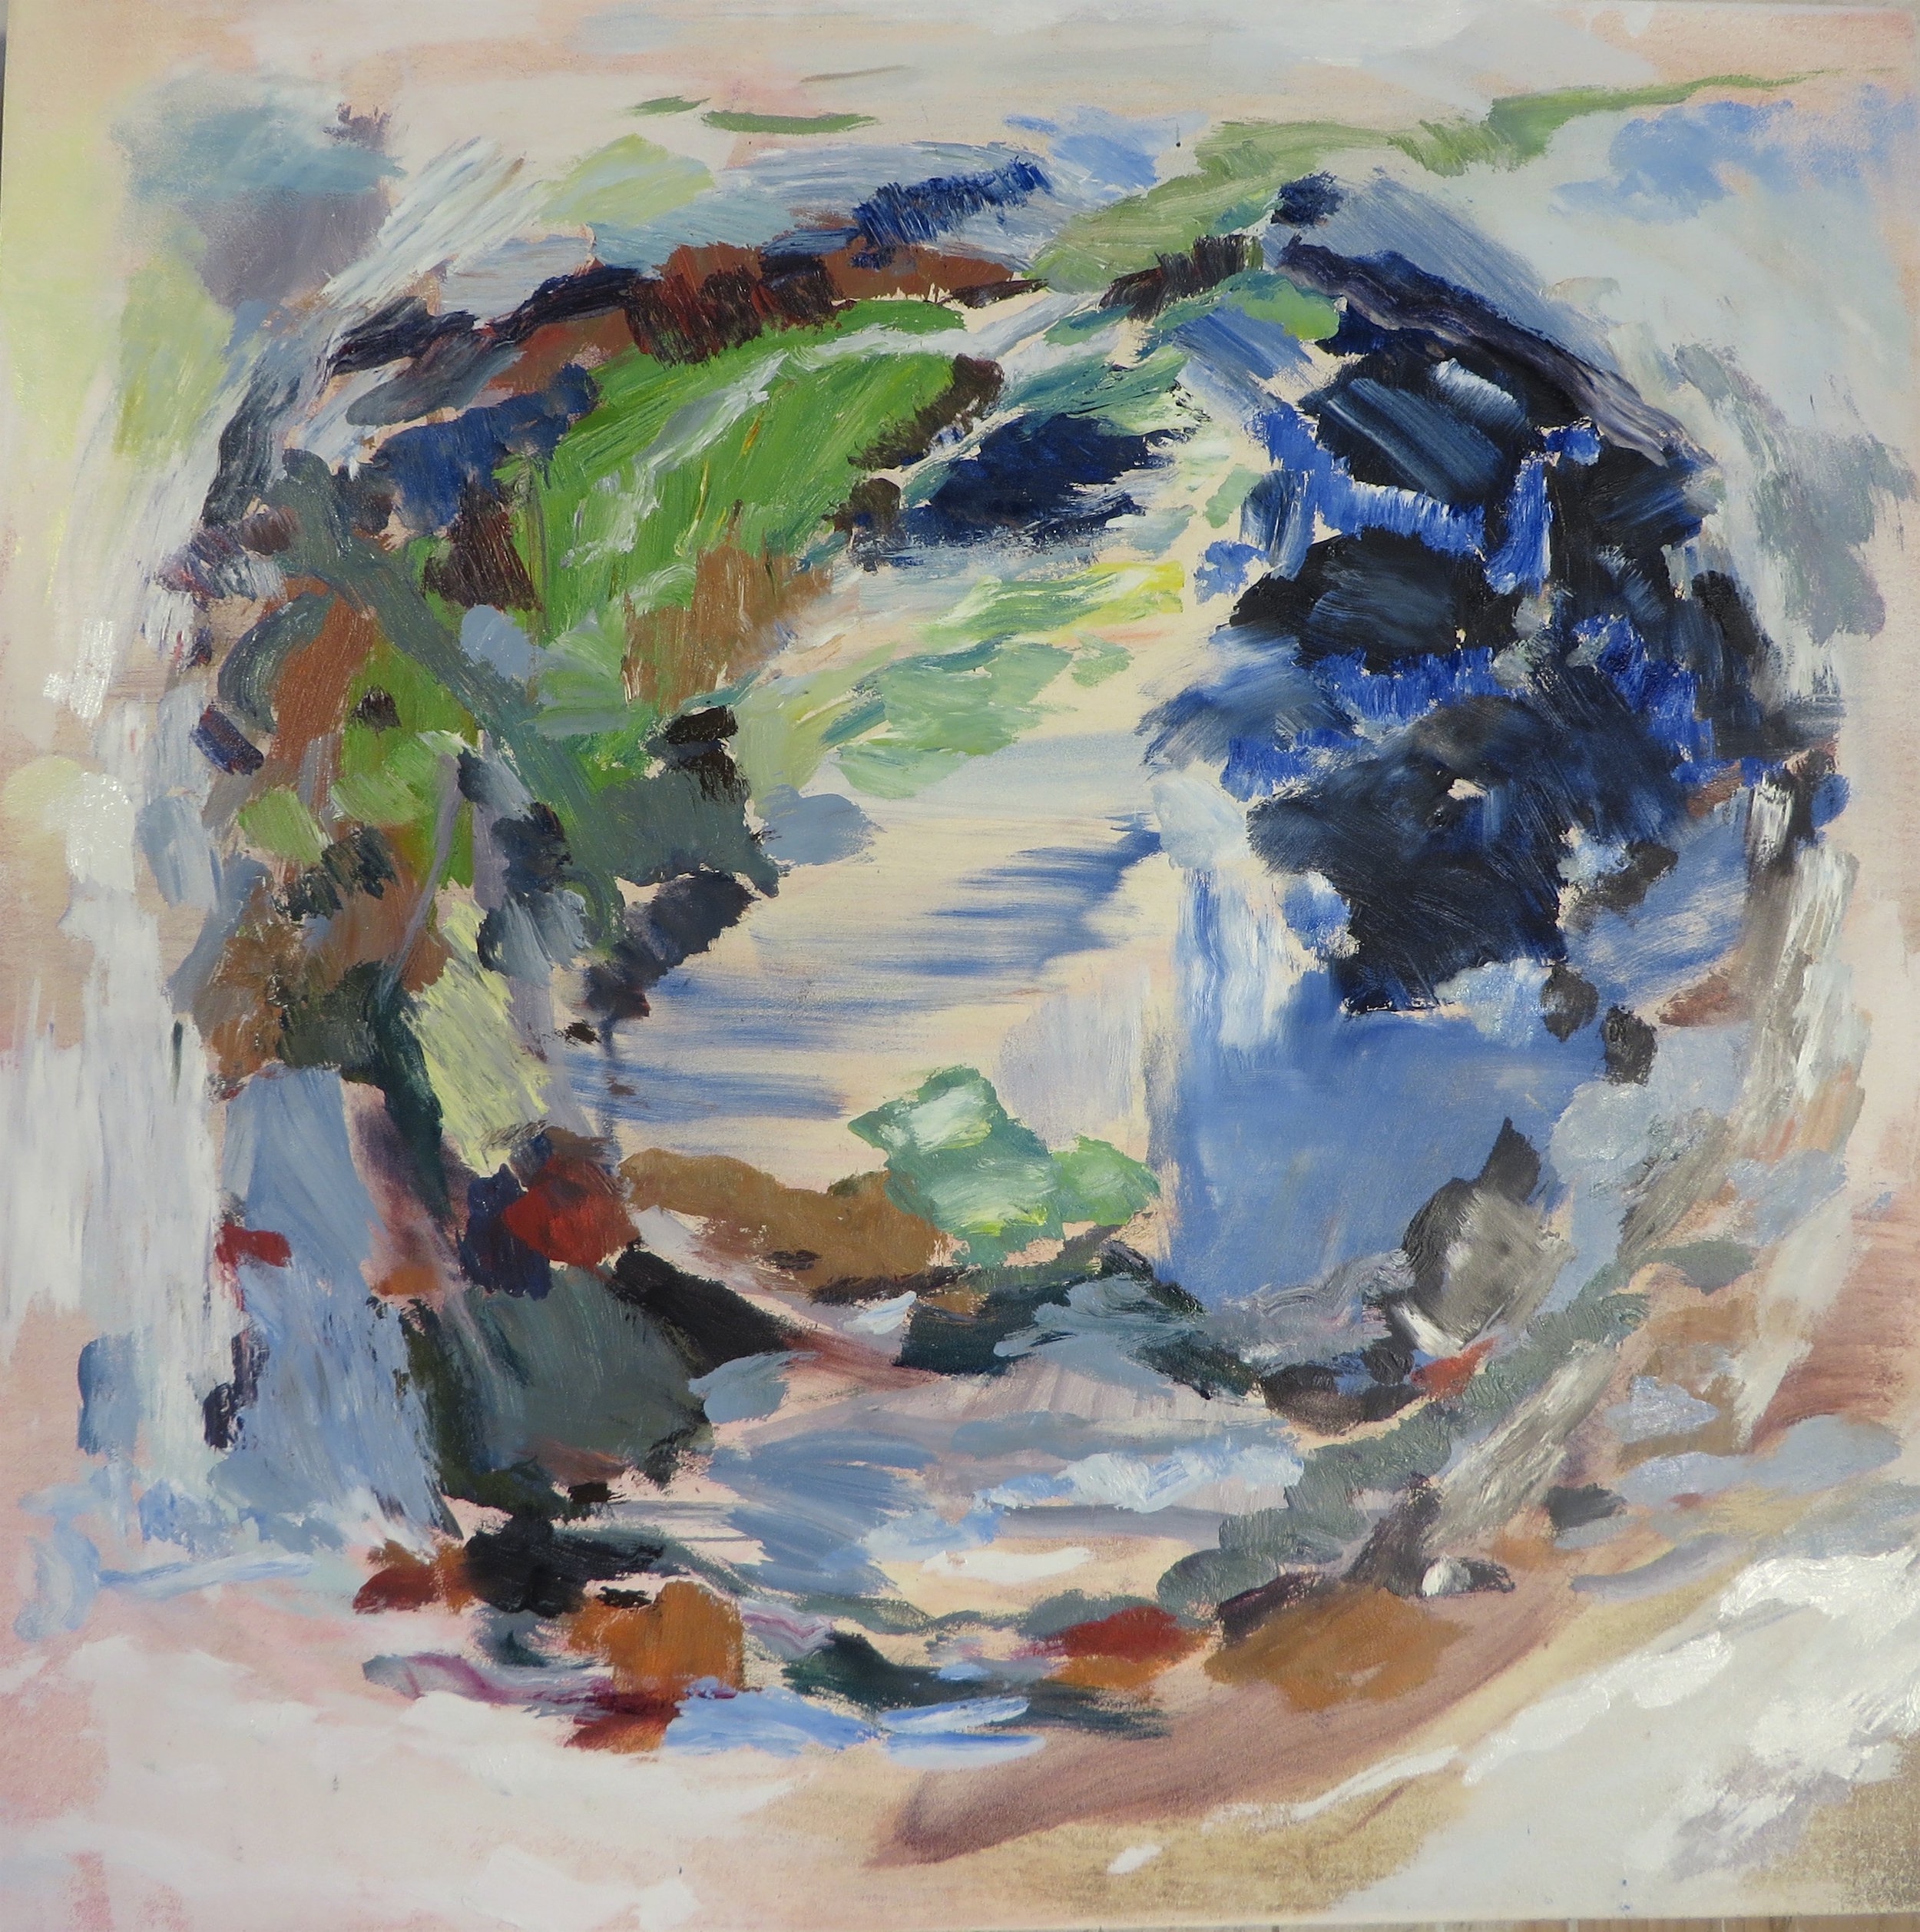 Earth Series 5, 2014